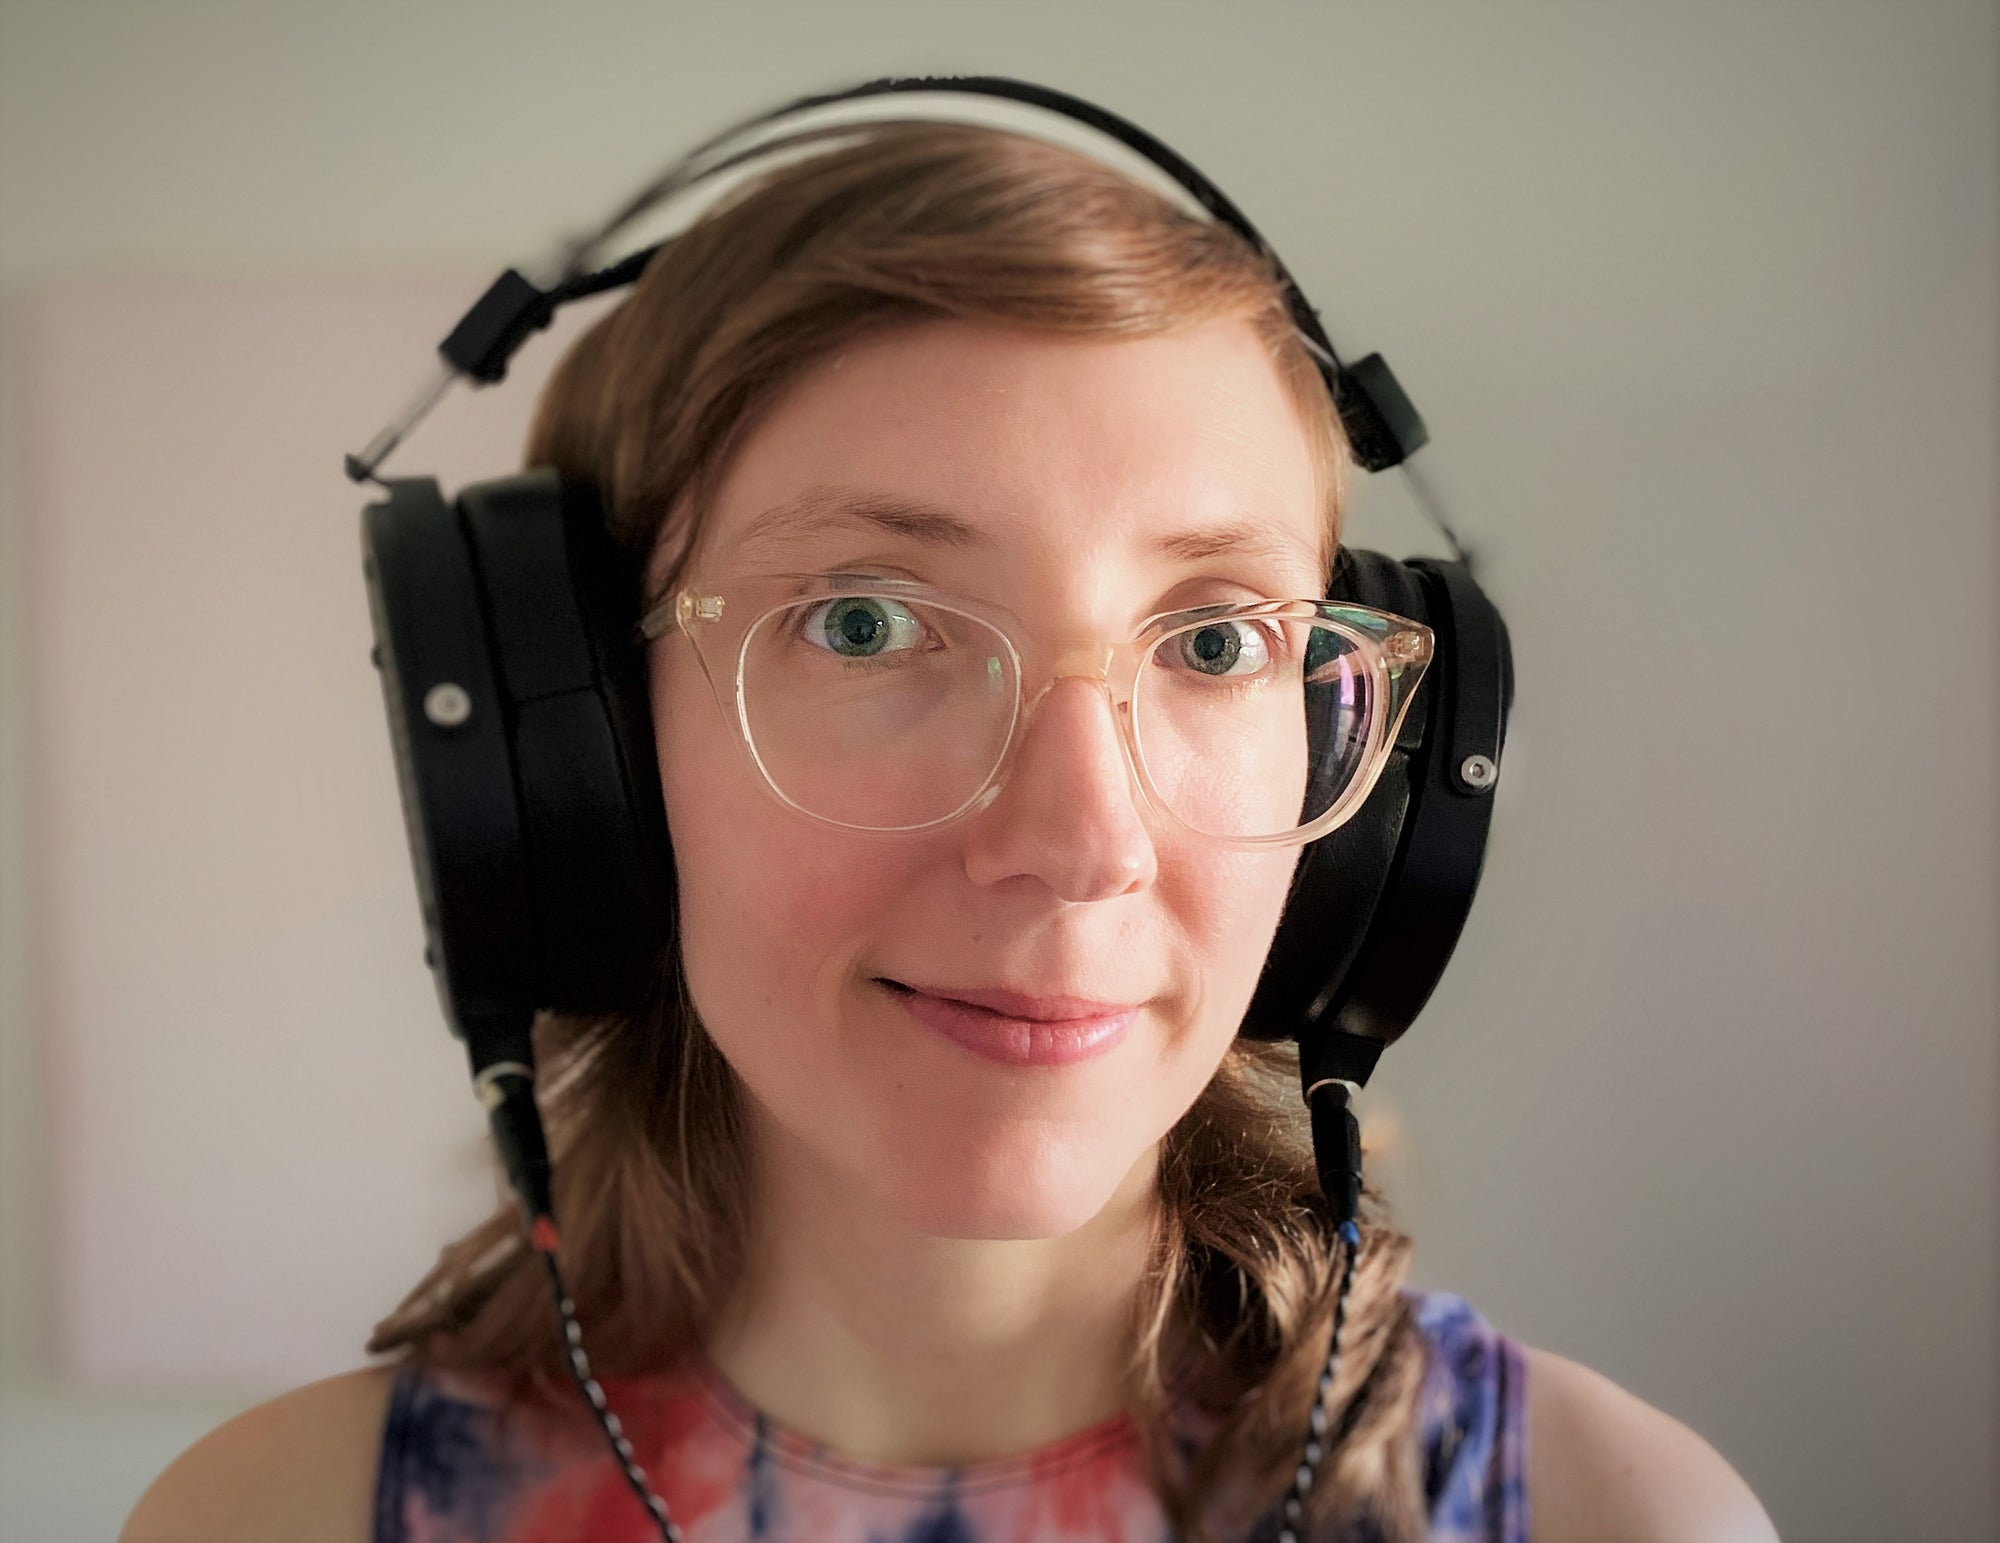 Audeze interviews guitarist and composer Mary Halvorson